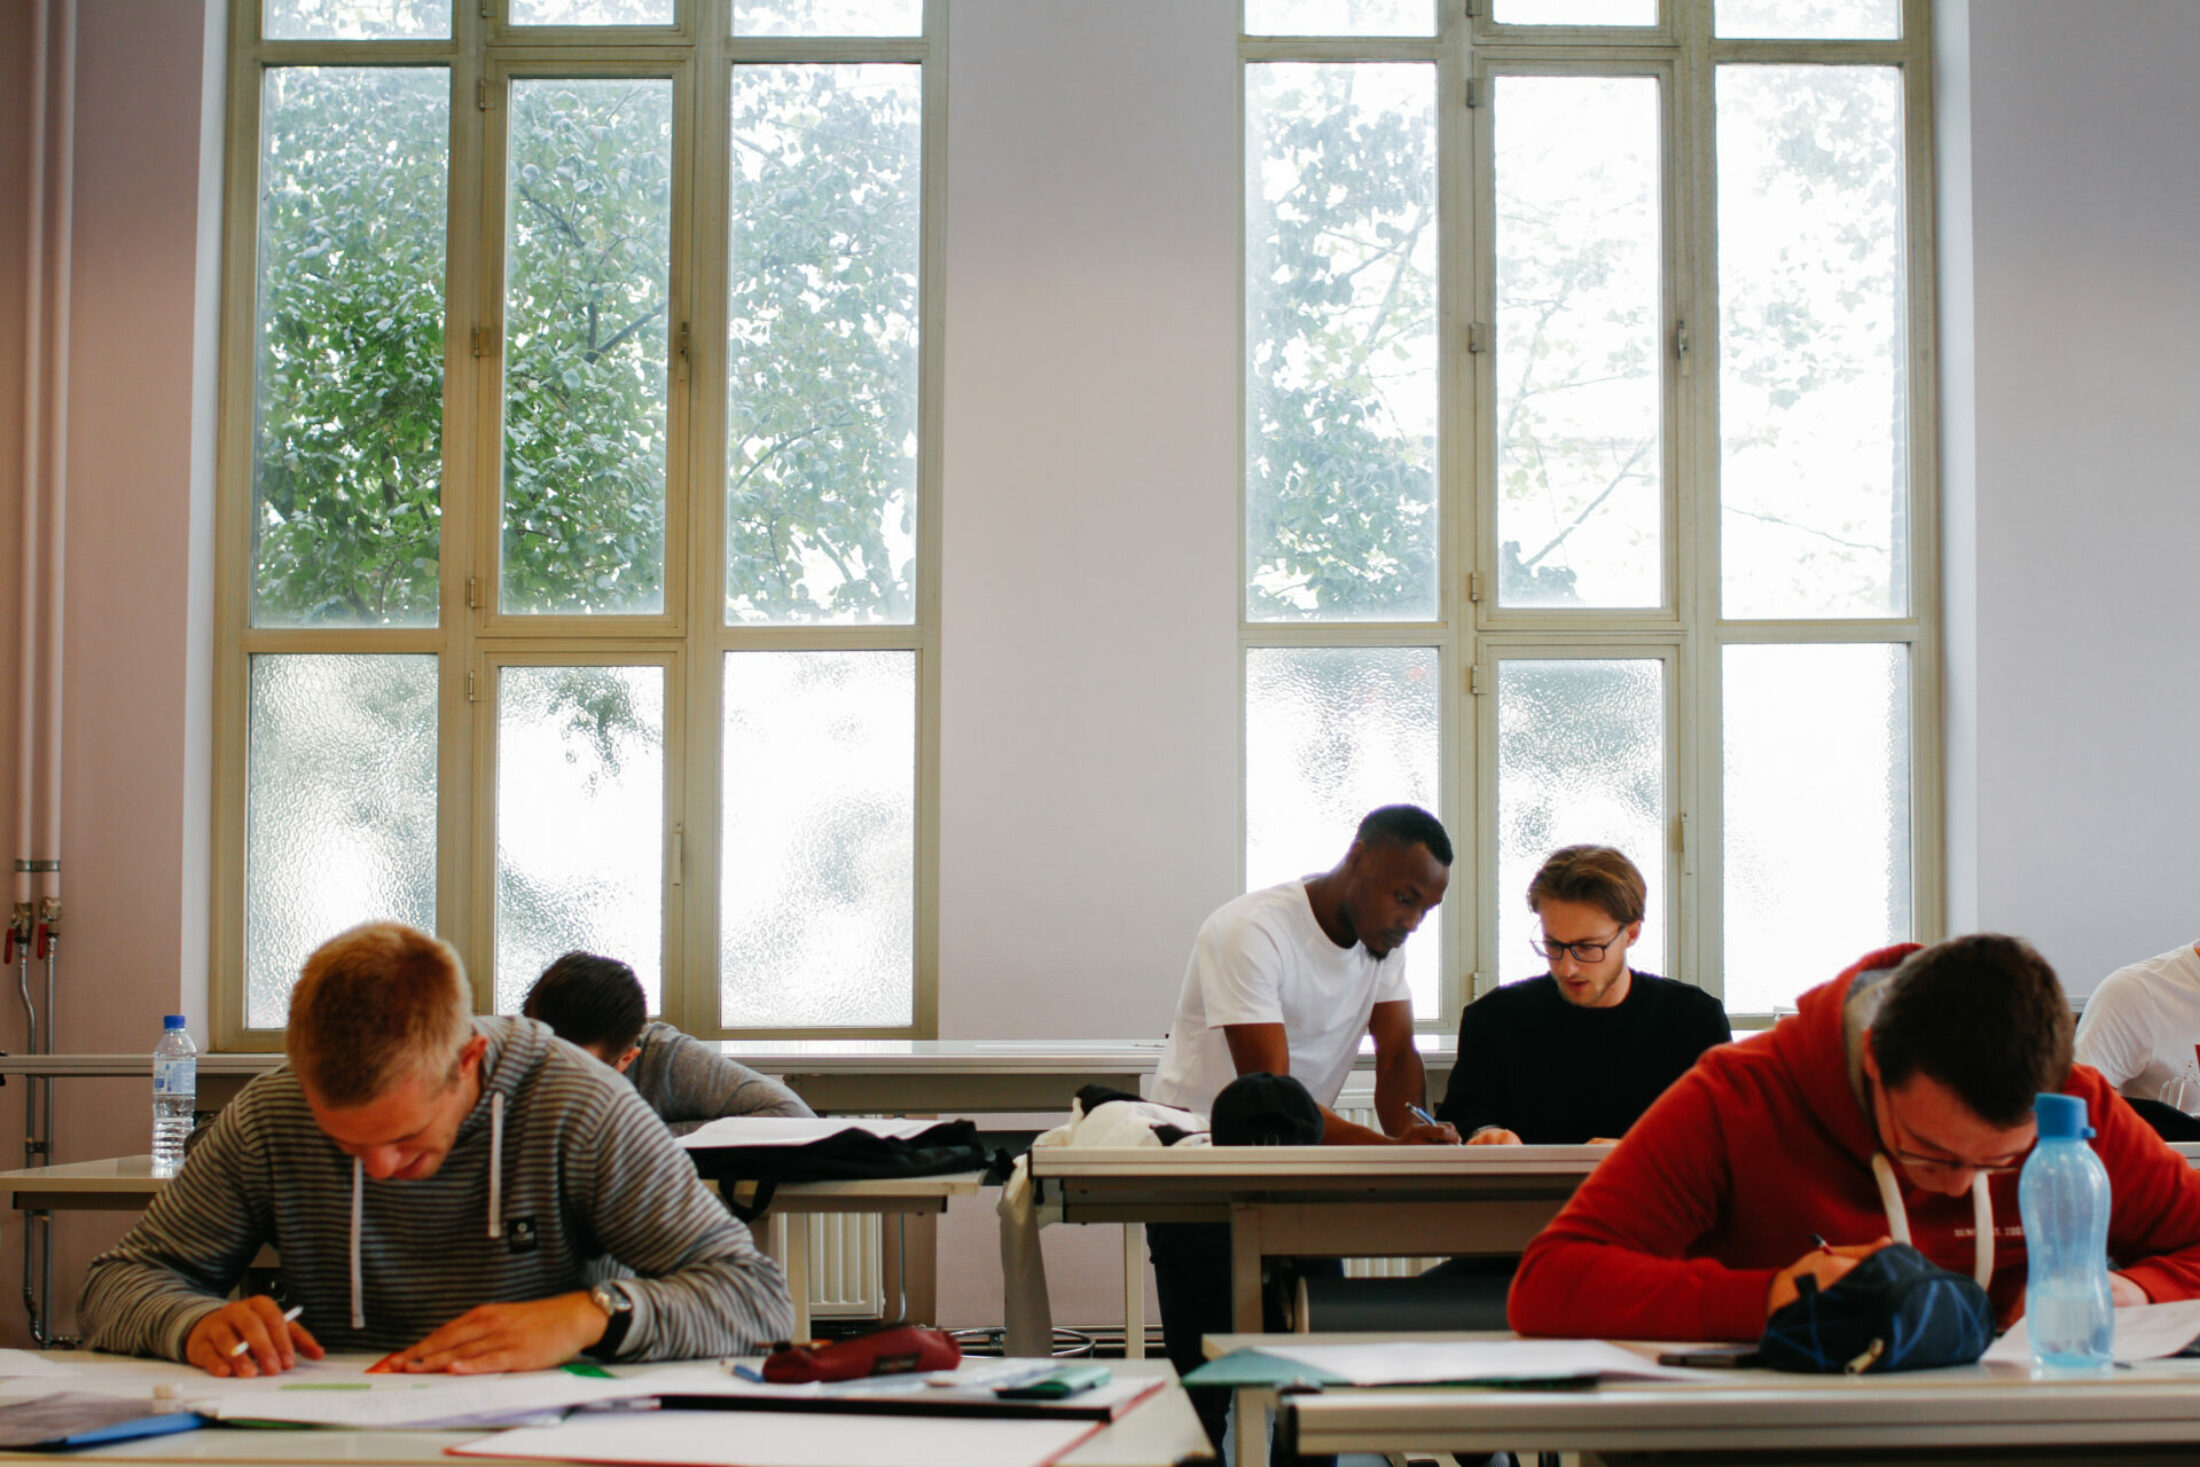 Studying in Charleroi Metropolitan Area: the new trend